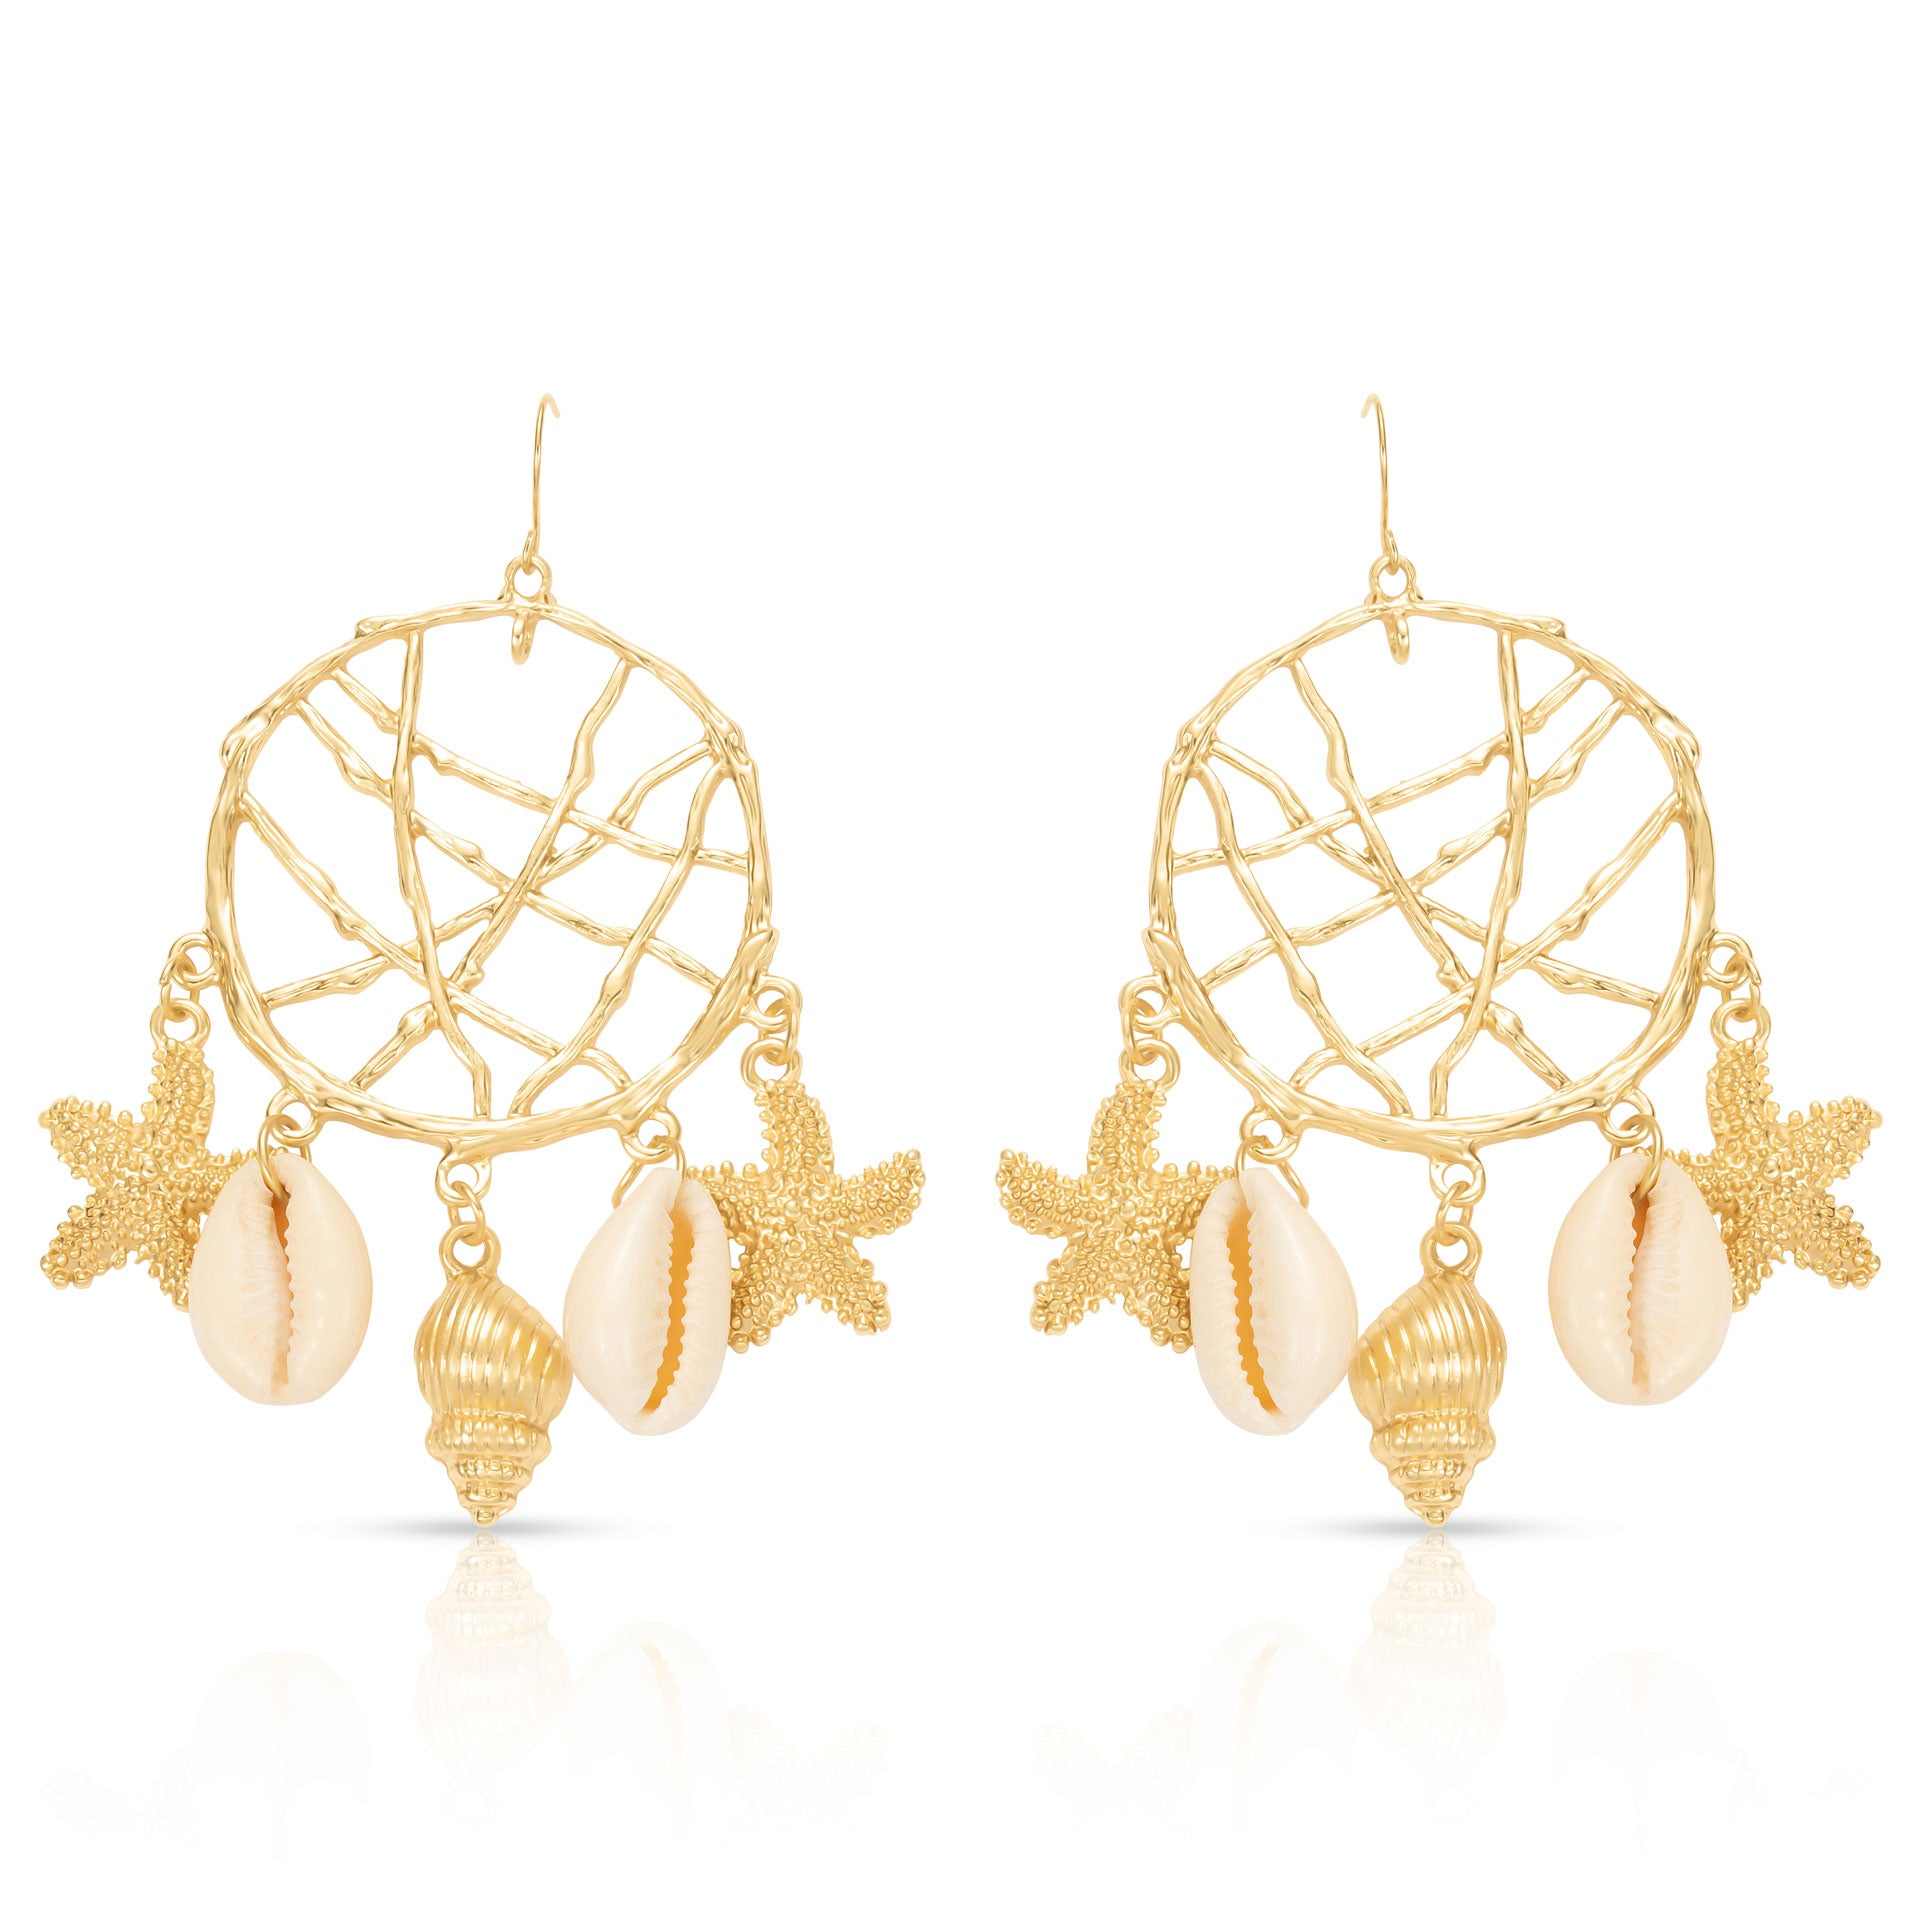 THE ANGELICA EARRINGS